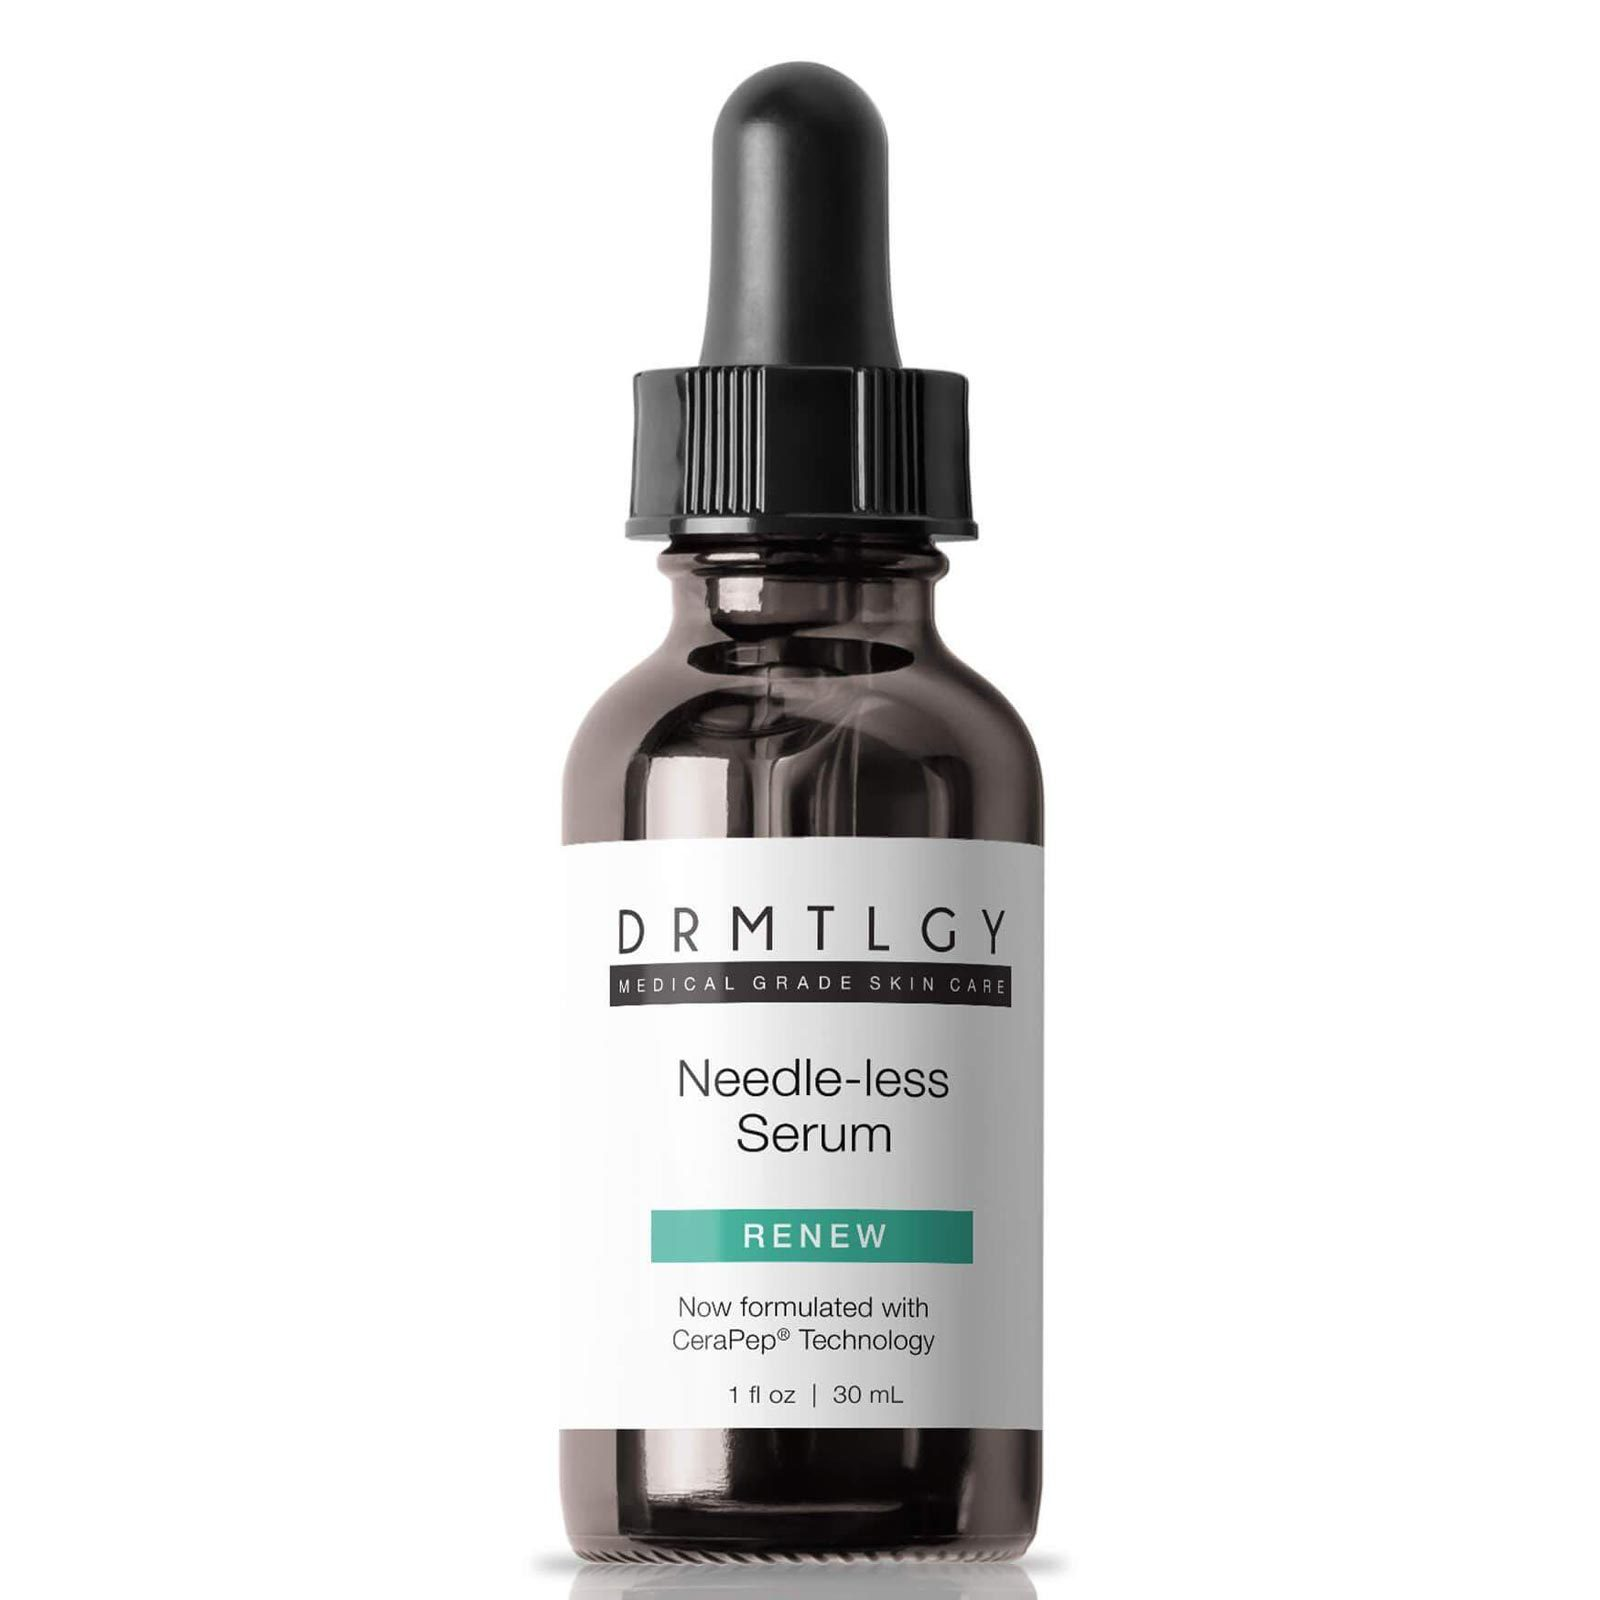 Needle-less Serum by DRMTLGY